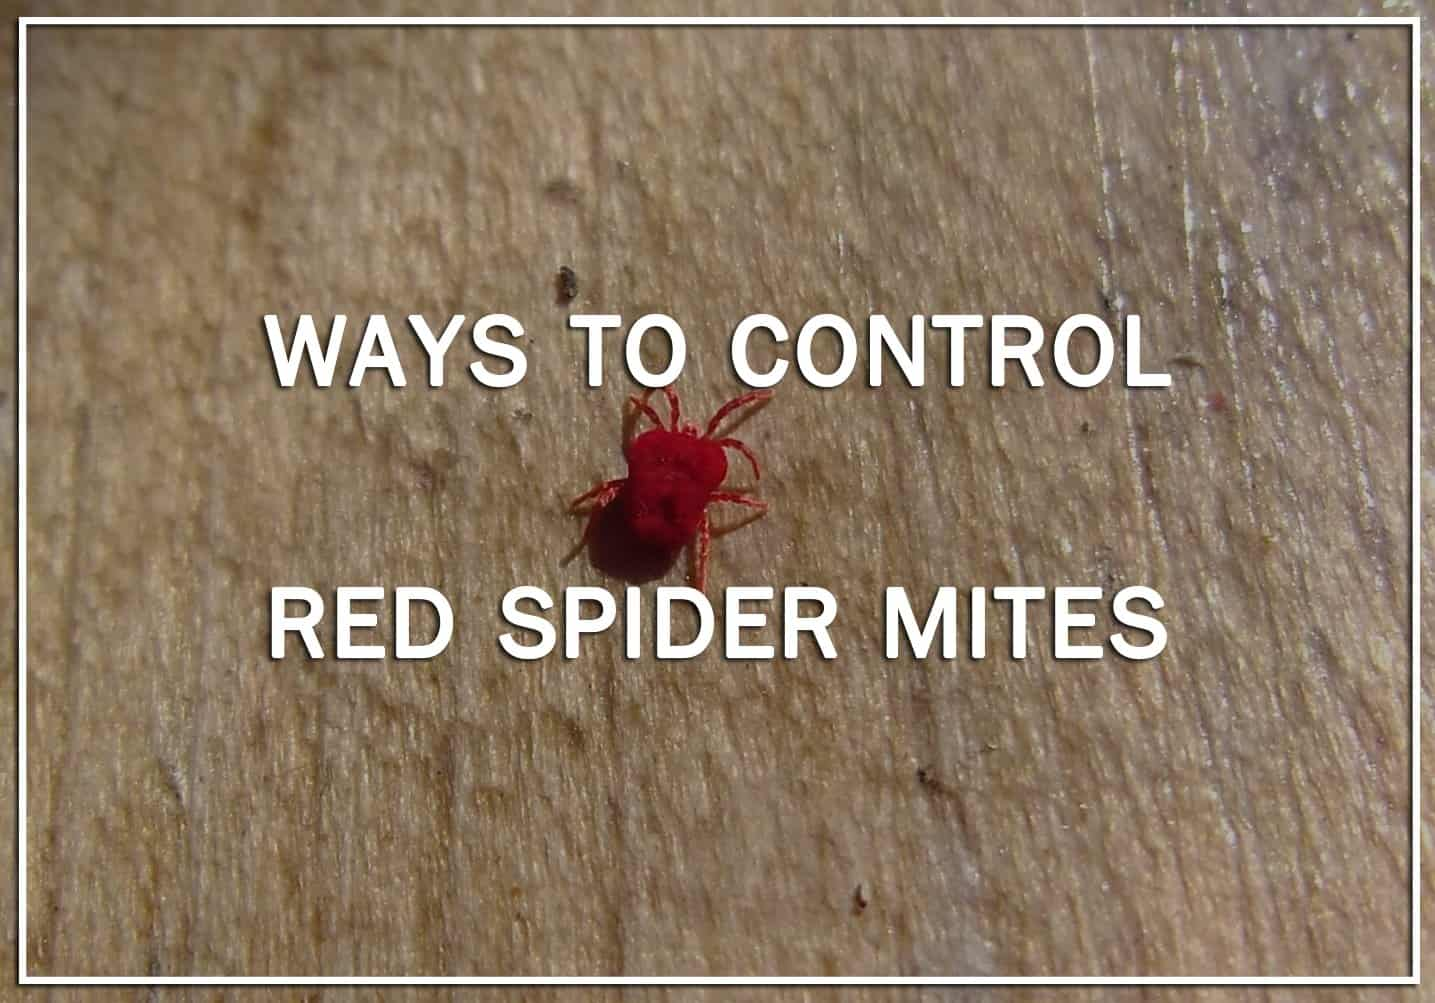 10 Ways to Control Red Spider Mites by